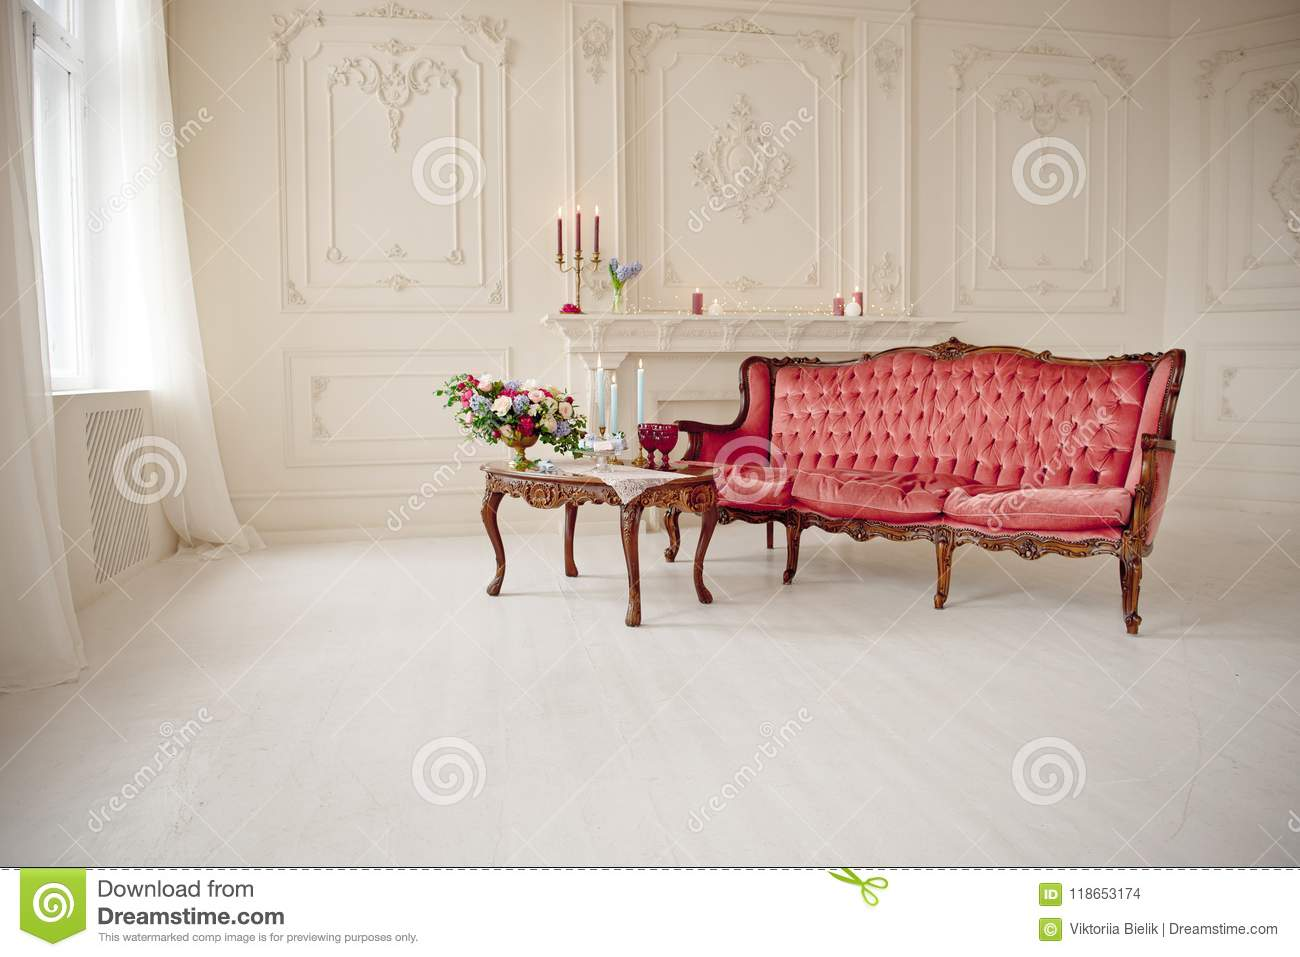 Amazing Baroque Style Interior With Red Luxury Sofa And Table Stock Machost Co Dining Chair Design Ideas Machostcouk